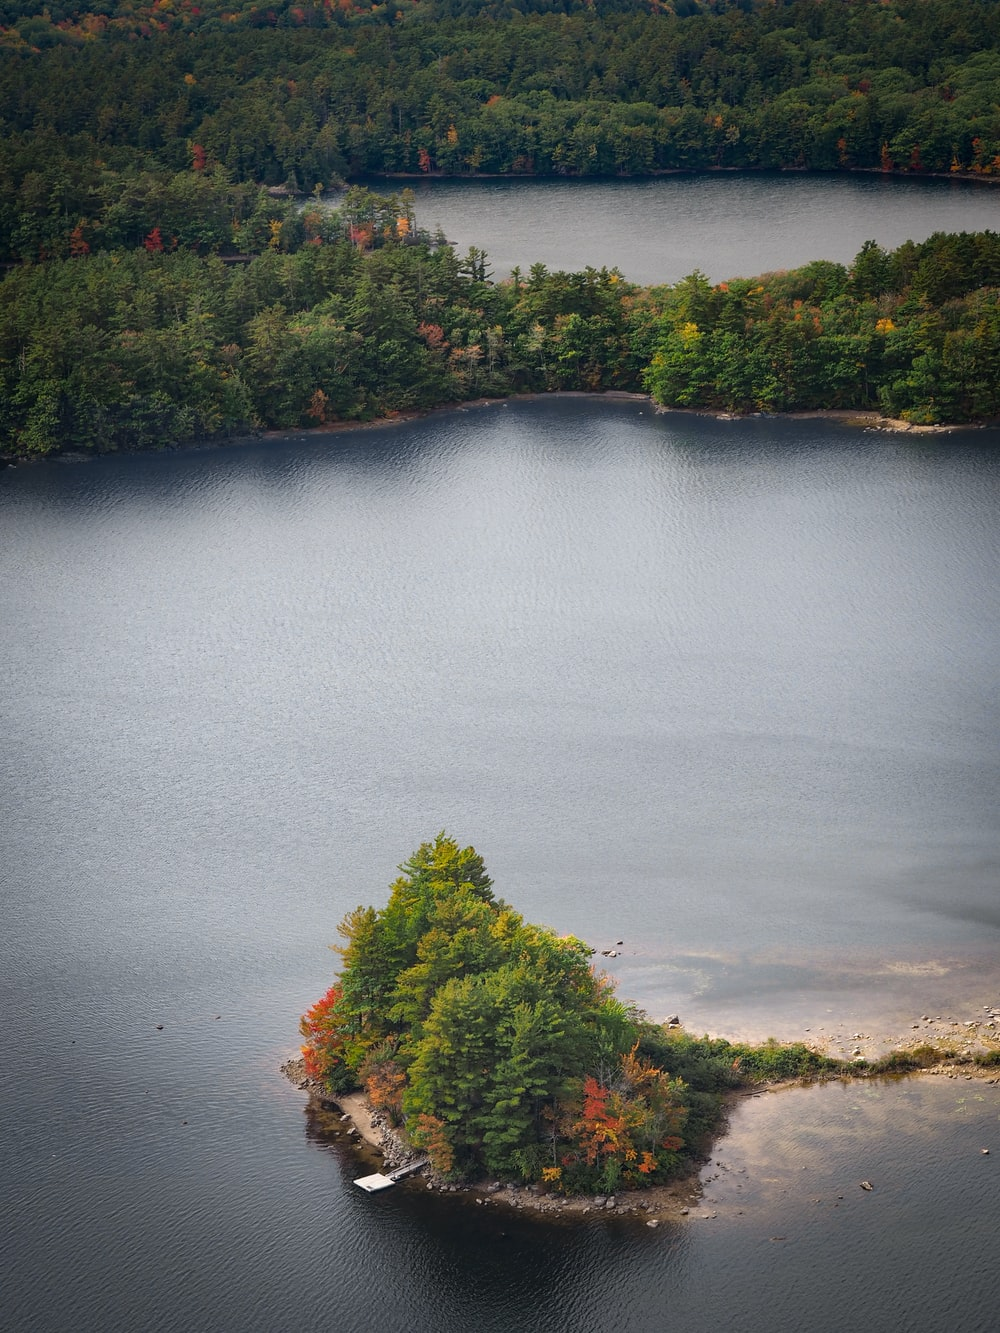 aerial view of green trees near body of water during daytime